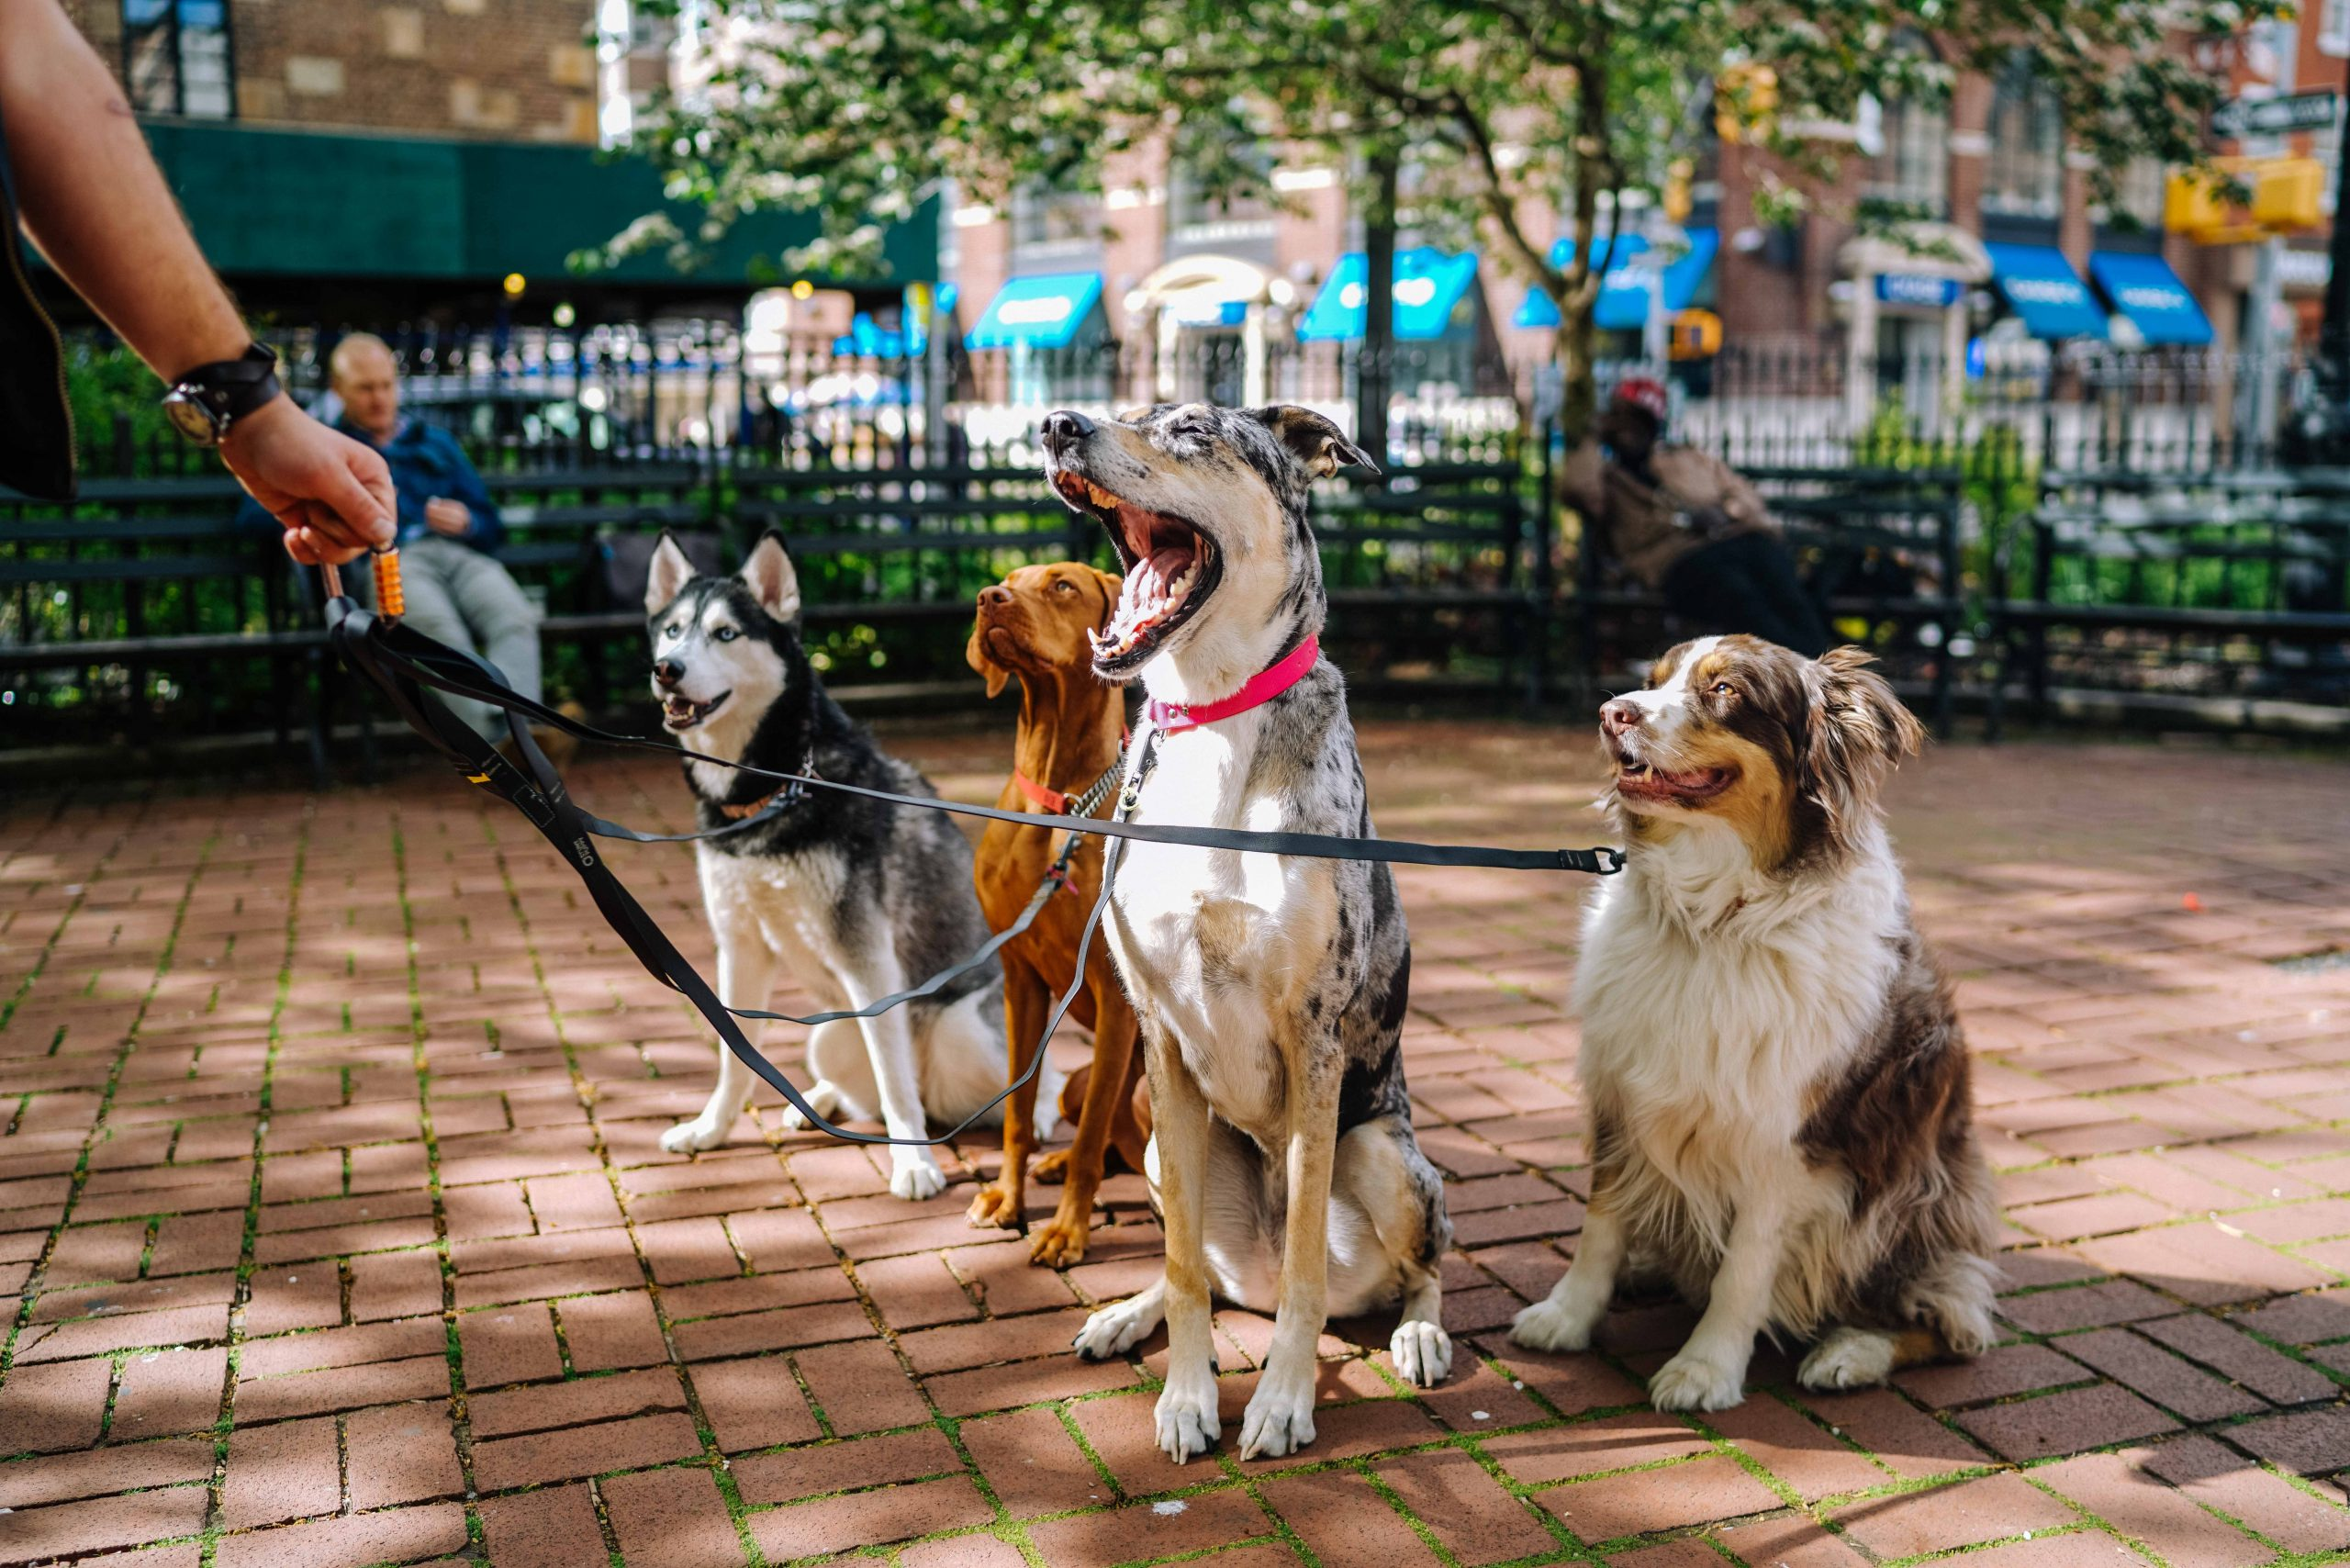 4 Types of Most Unique and Rare Dog Breeds